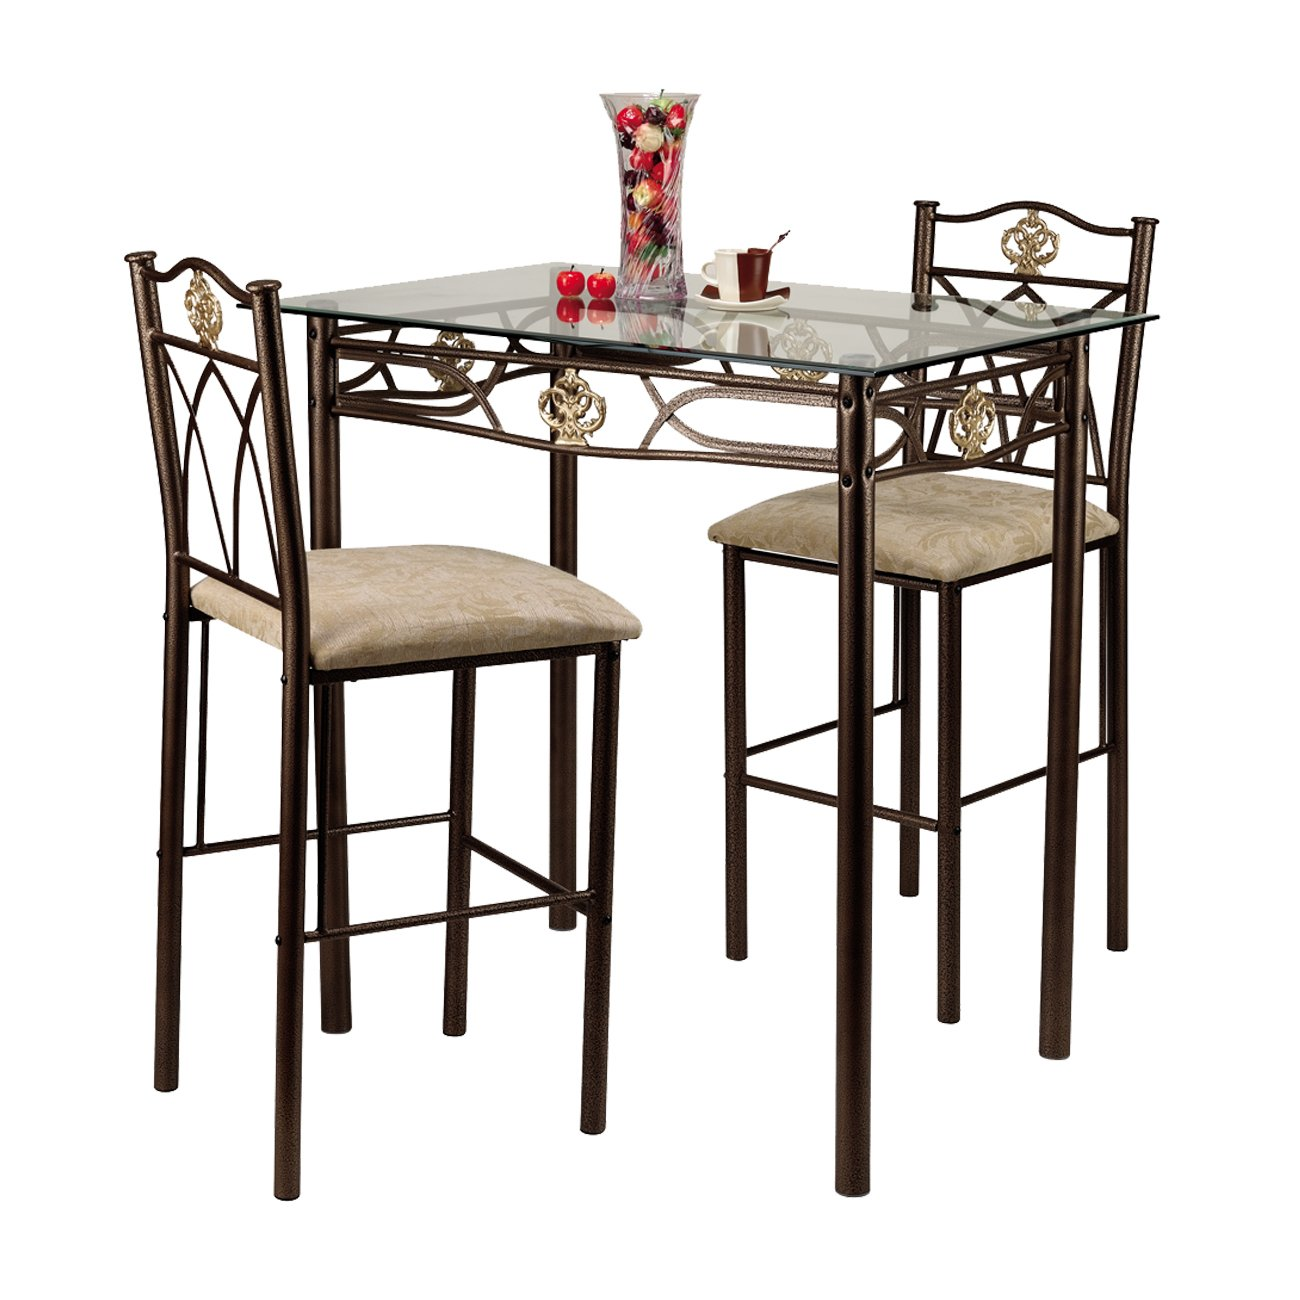 amazon com  home source industries crown bistro 3 piece dining set with glass table top and 2 chairs  kitchen  u0026 dining amazon com  home source industries crown bistro 3 piece dining set      rh   amazon com